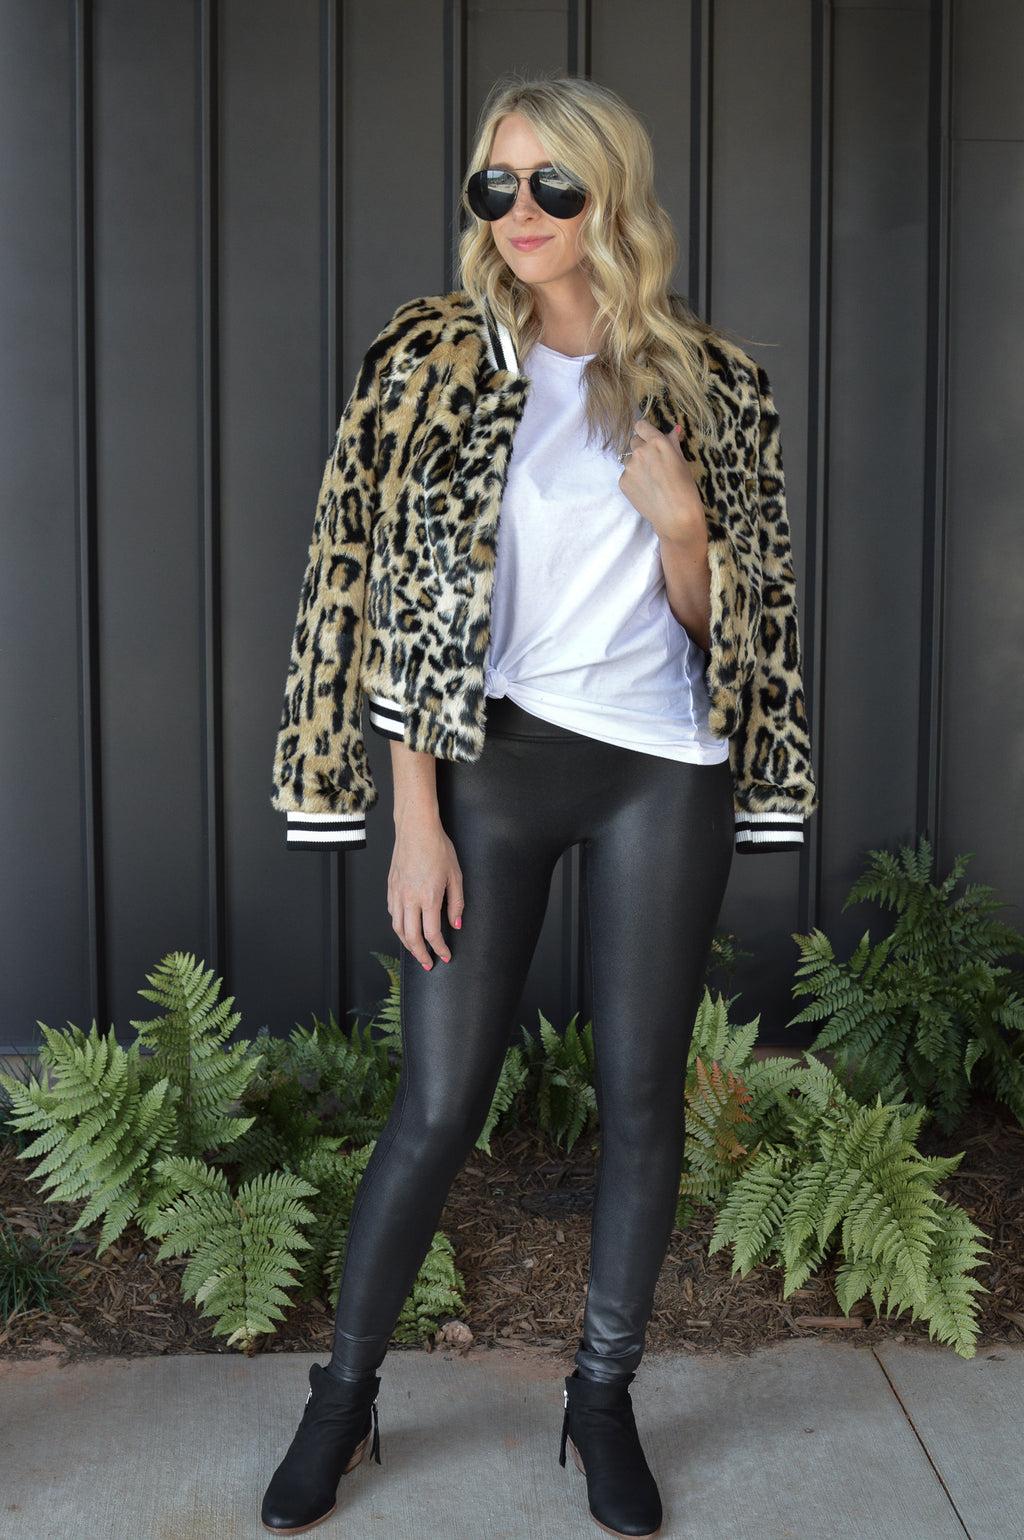 JACK BY BB DAKOTA LEOPARD BOMBER